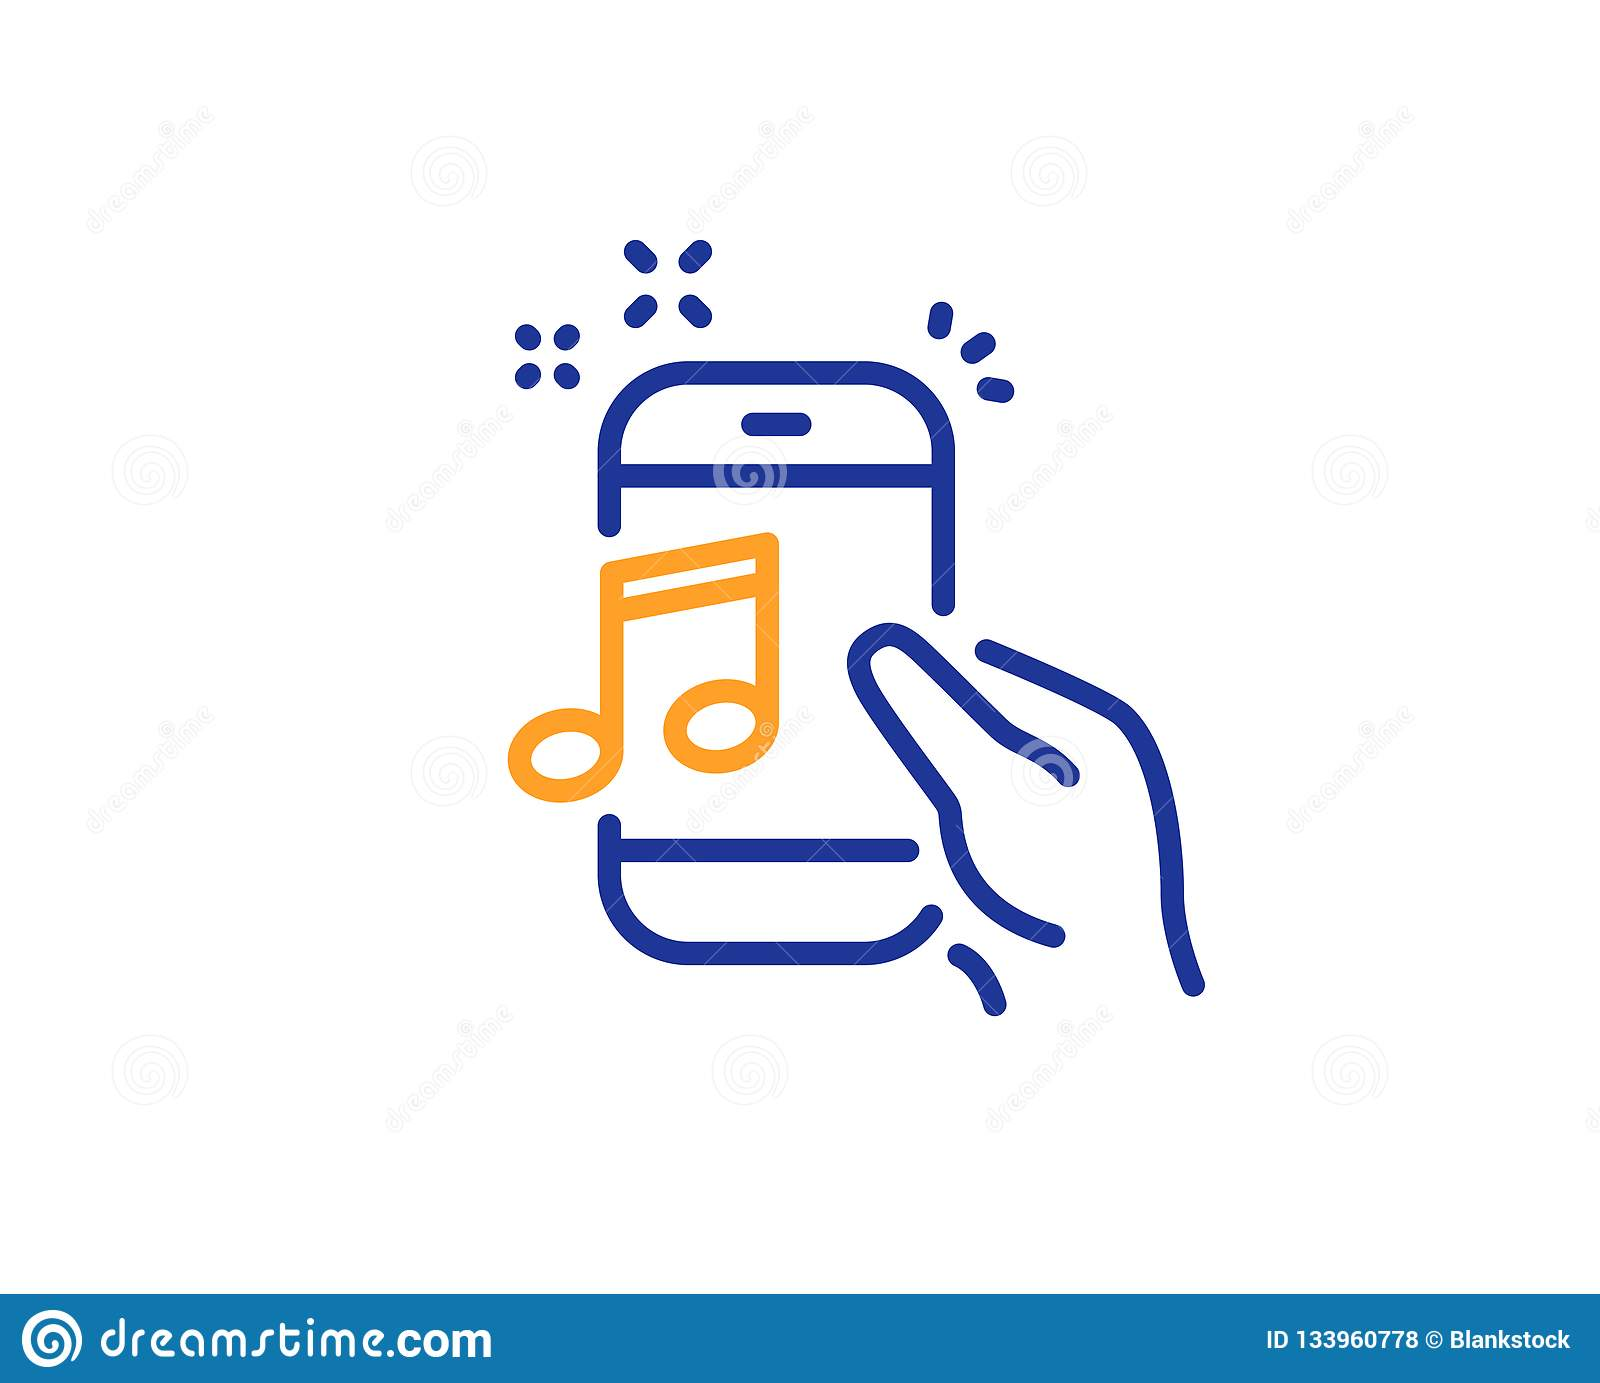 hight resolution of music in phone line icon mobile radio sign musical device symbol colorful outline concept blue and orange thin line color icon music phone vector